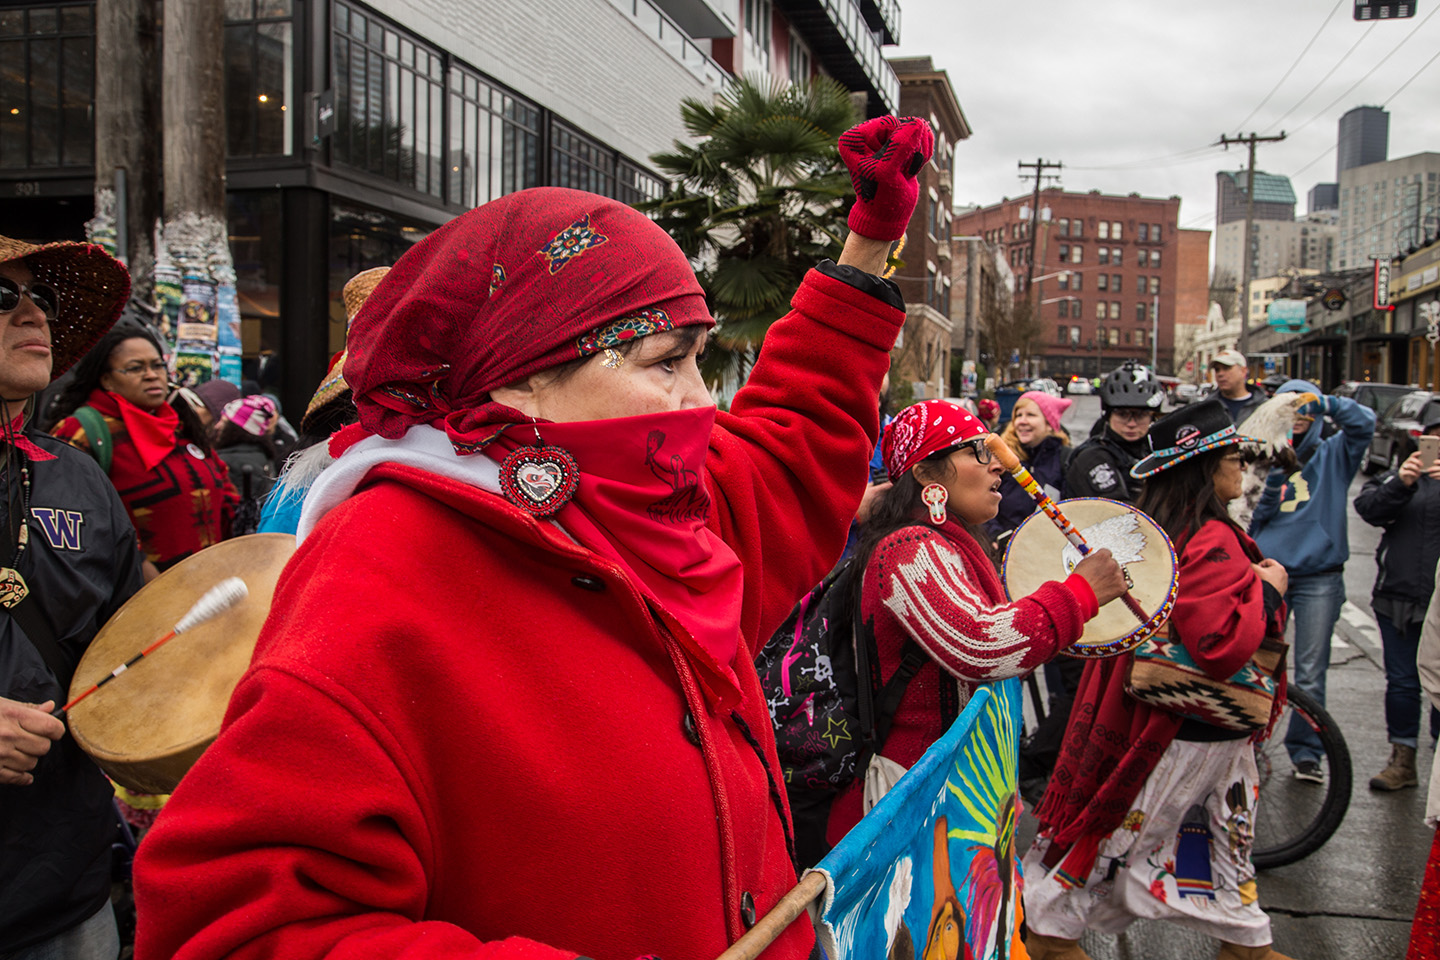 Report: Seattle tops list of murdered and missing Indigenous women